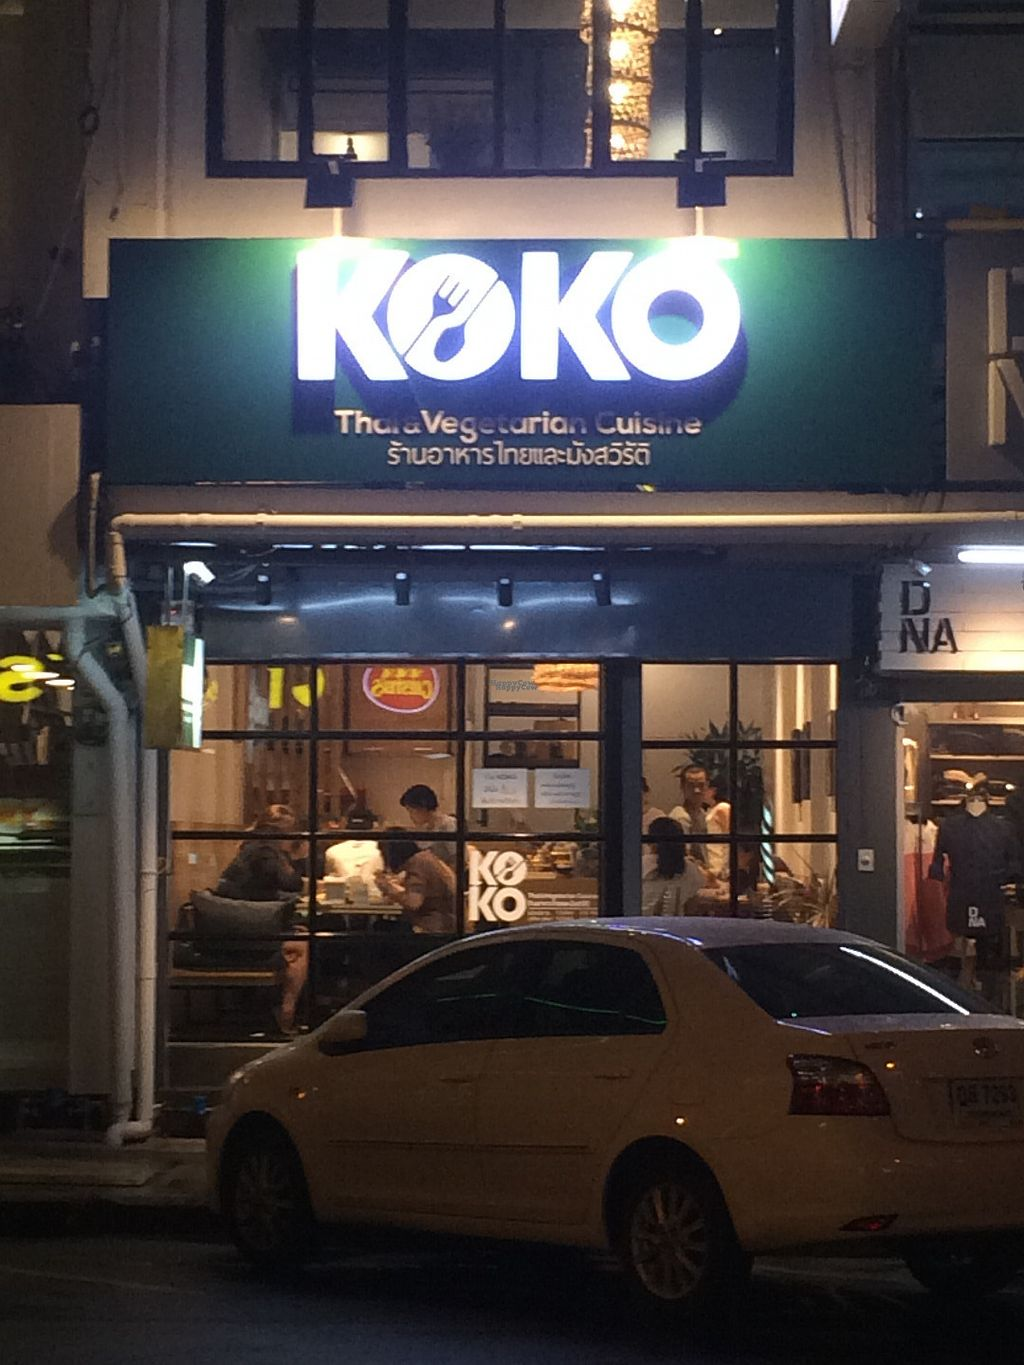 "Photo of Koko Thai & Vegetarian Cuisine  by <a href=""/members/profile/Maruda"">Maruda</a> <br/>Front door of Koko thai <br/> September 13, 2016  - <a href='/contact/abuse/image/76727/175370'>Report</a>"